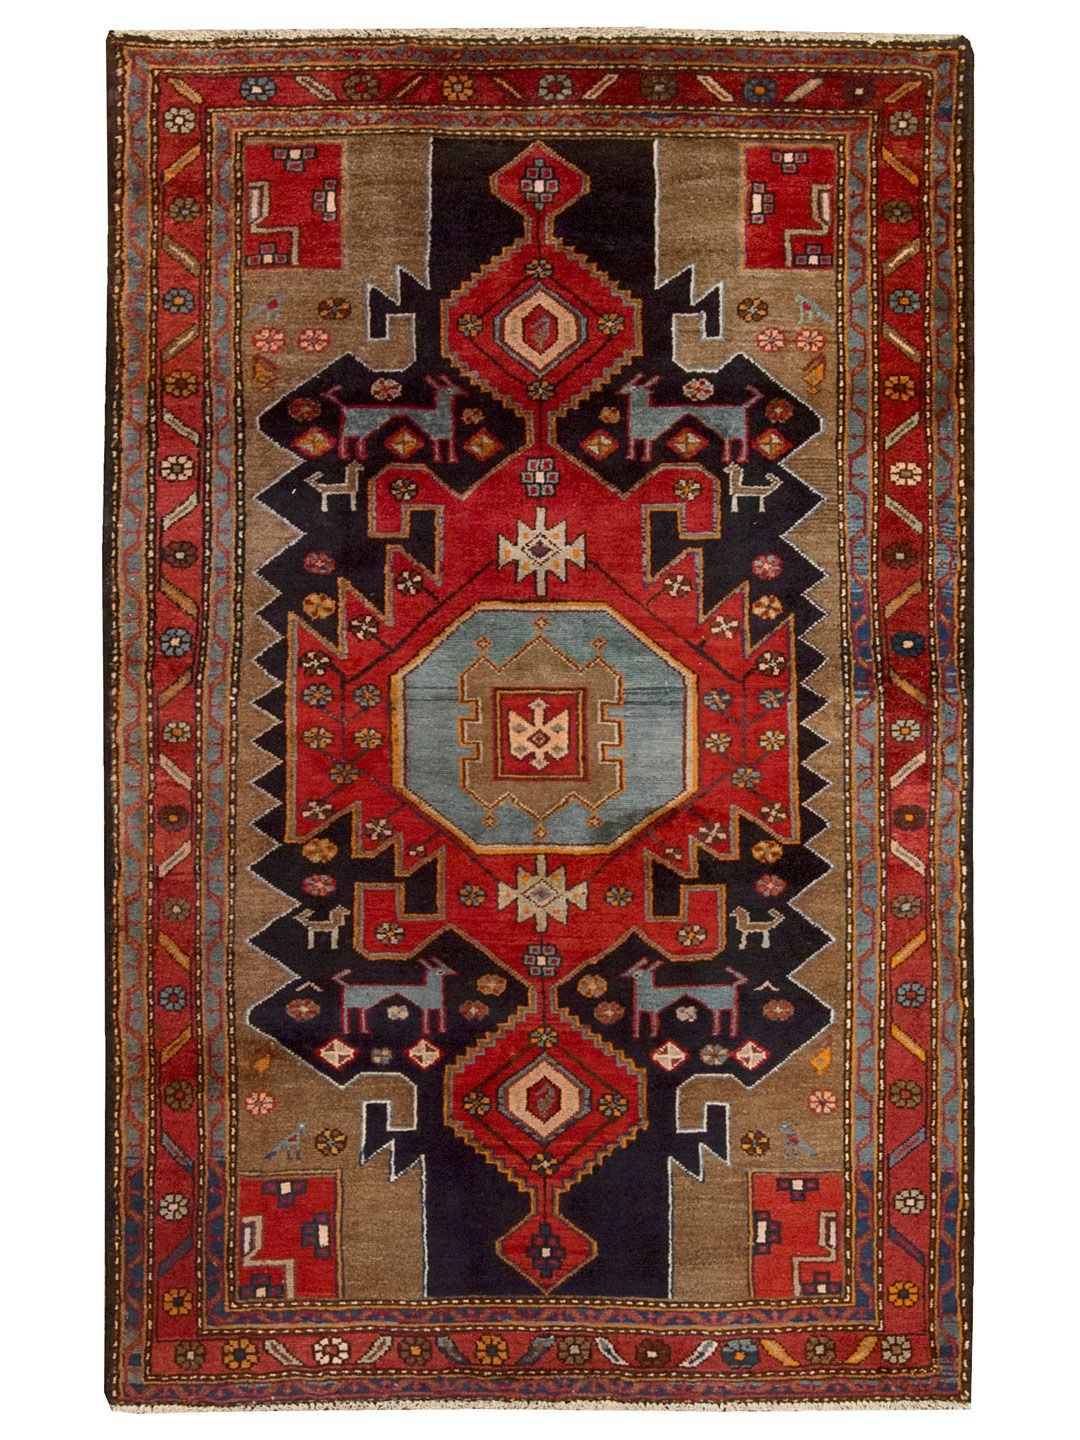 Tapis Iranien Fait Main Hand Knotted Persian Rug Home Decor And Design Pinterest